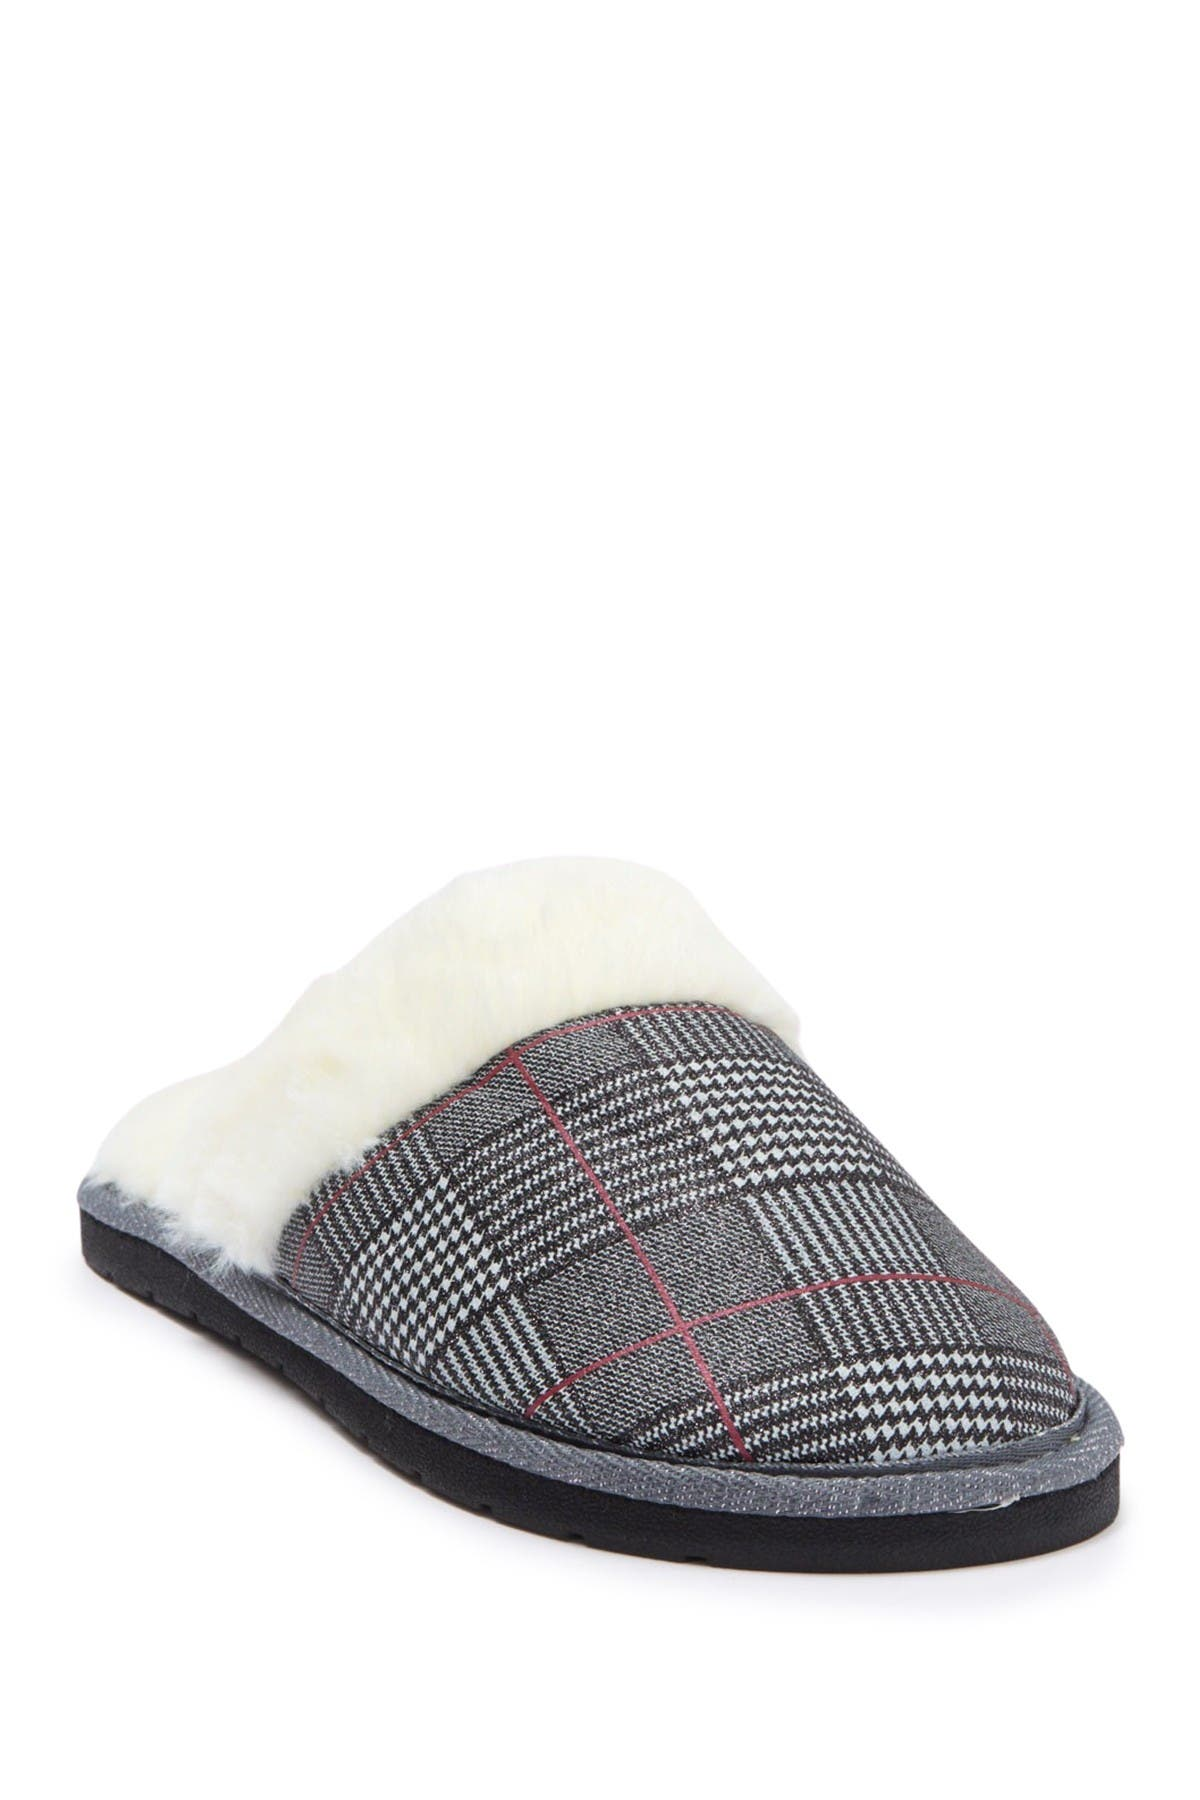 Image of Kensie Glitter Plaid Faux Fur Slipper